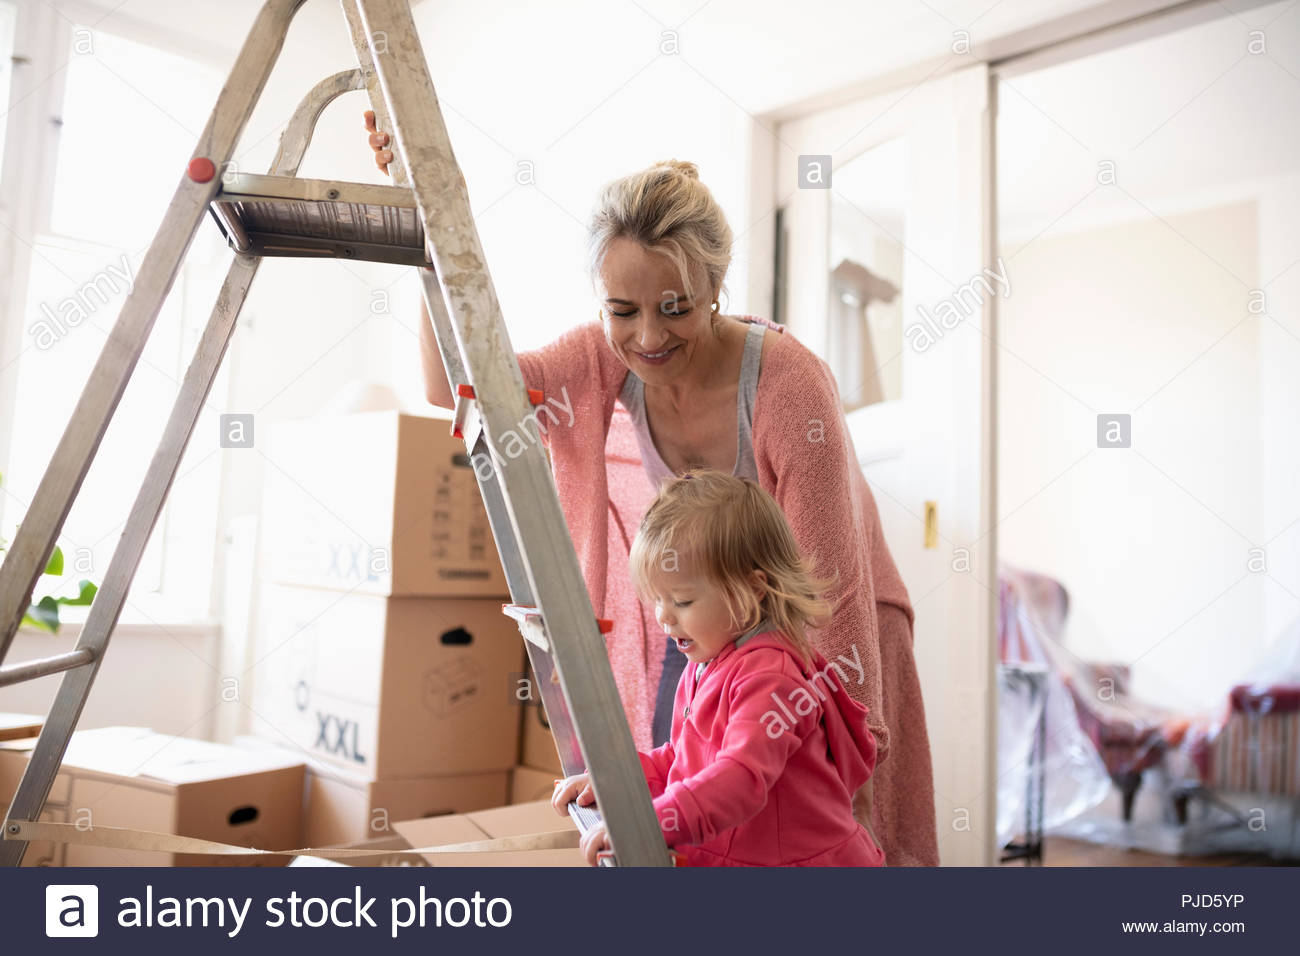 Mother and daughter at ladder, moving into new home - Stock Image